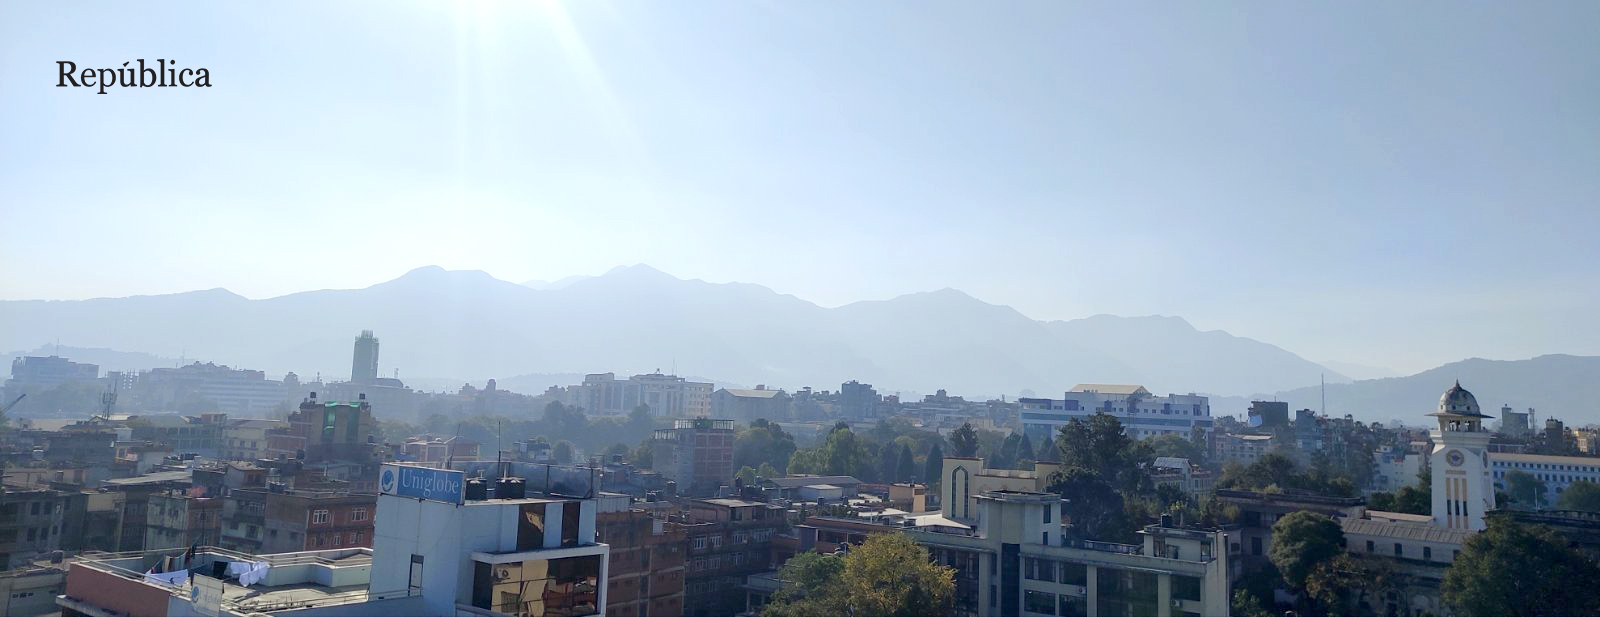 WEATHER ALERT: Valley mercury dips to 4 degrees Celsius